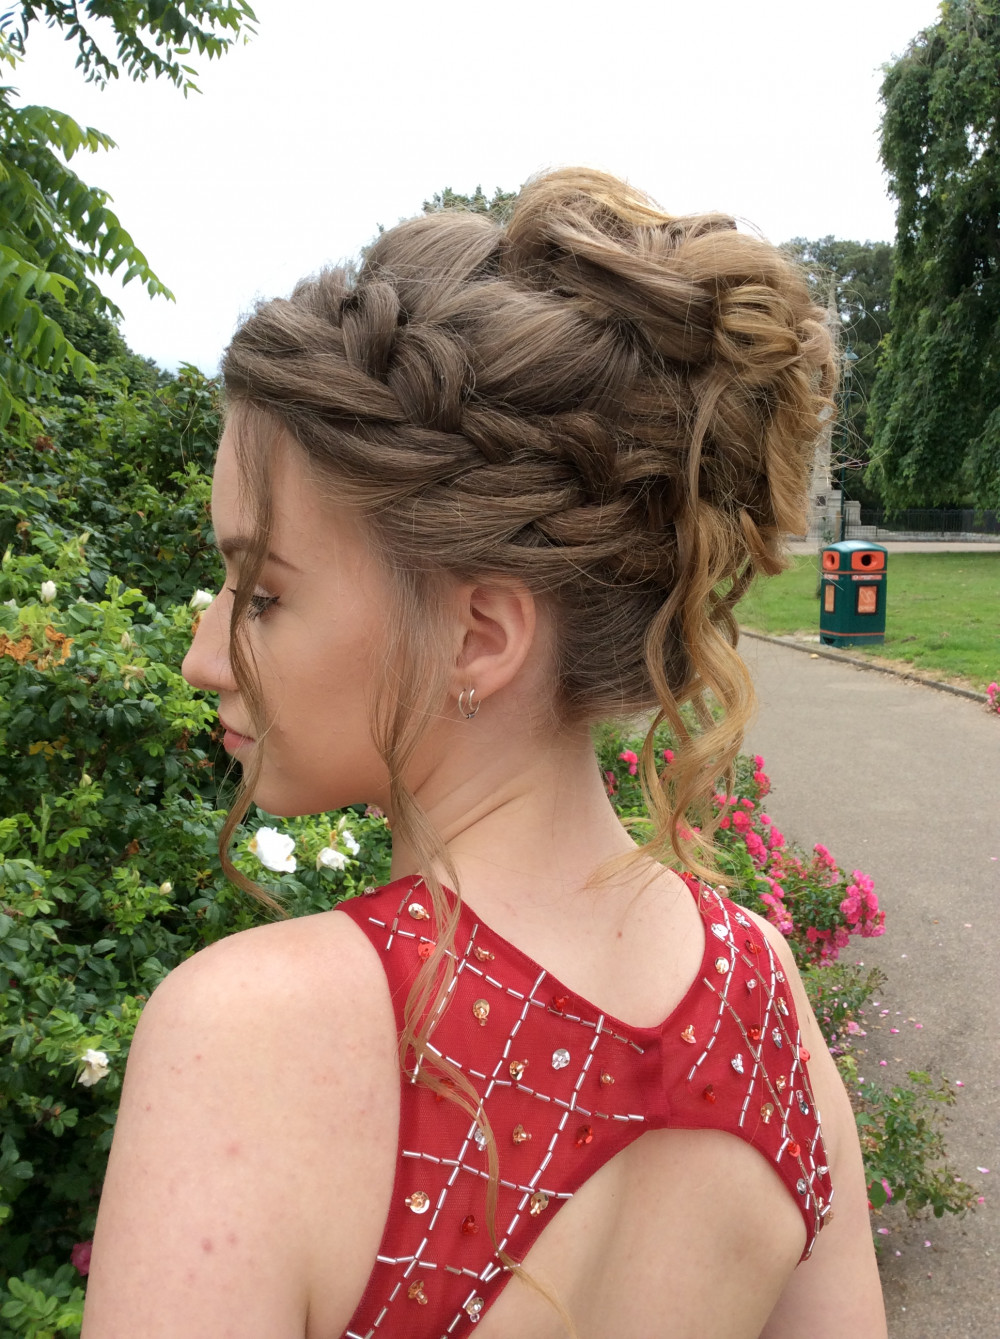 - Make Me Bridal Artist: Lily of the Valley hair design. #blonde #updo #elegant #romantichairup #messybun #bridesmaidhair #weddinghair #fishtailbraid #bridalhairstylist #plaits